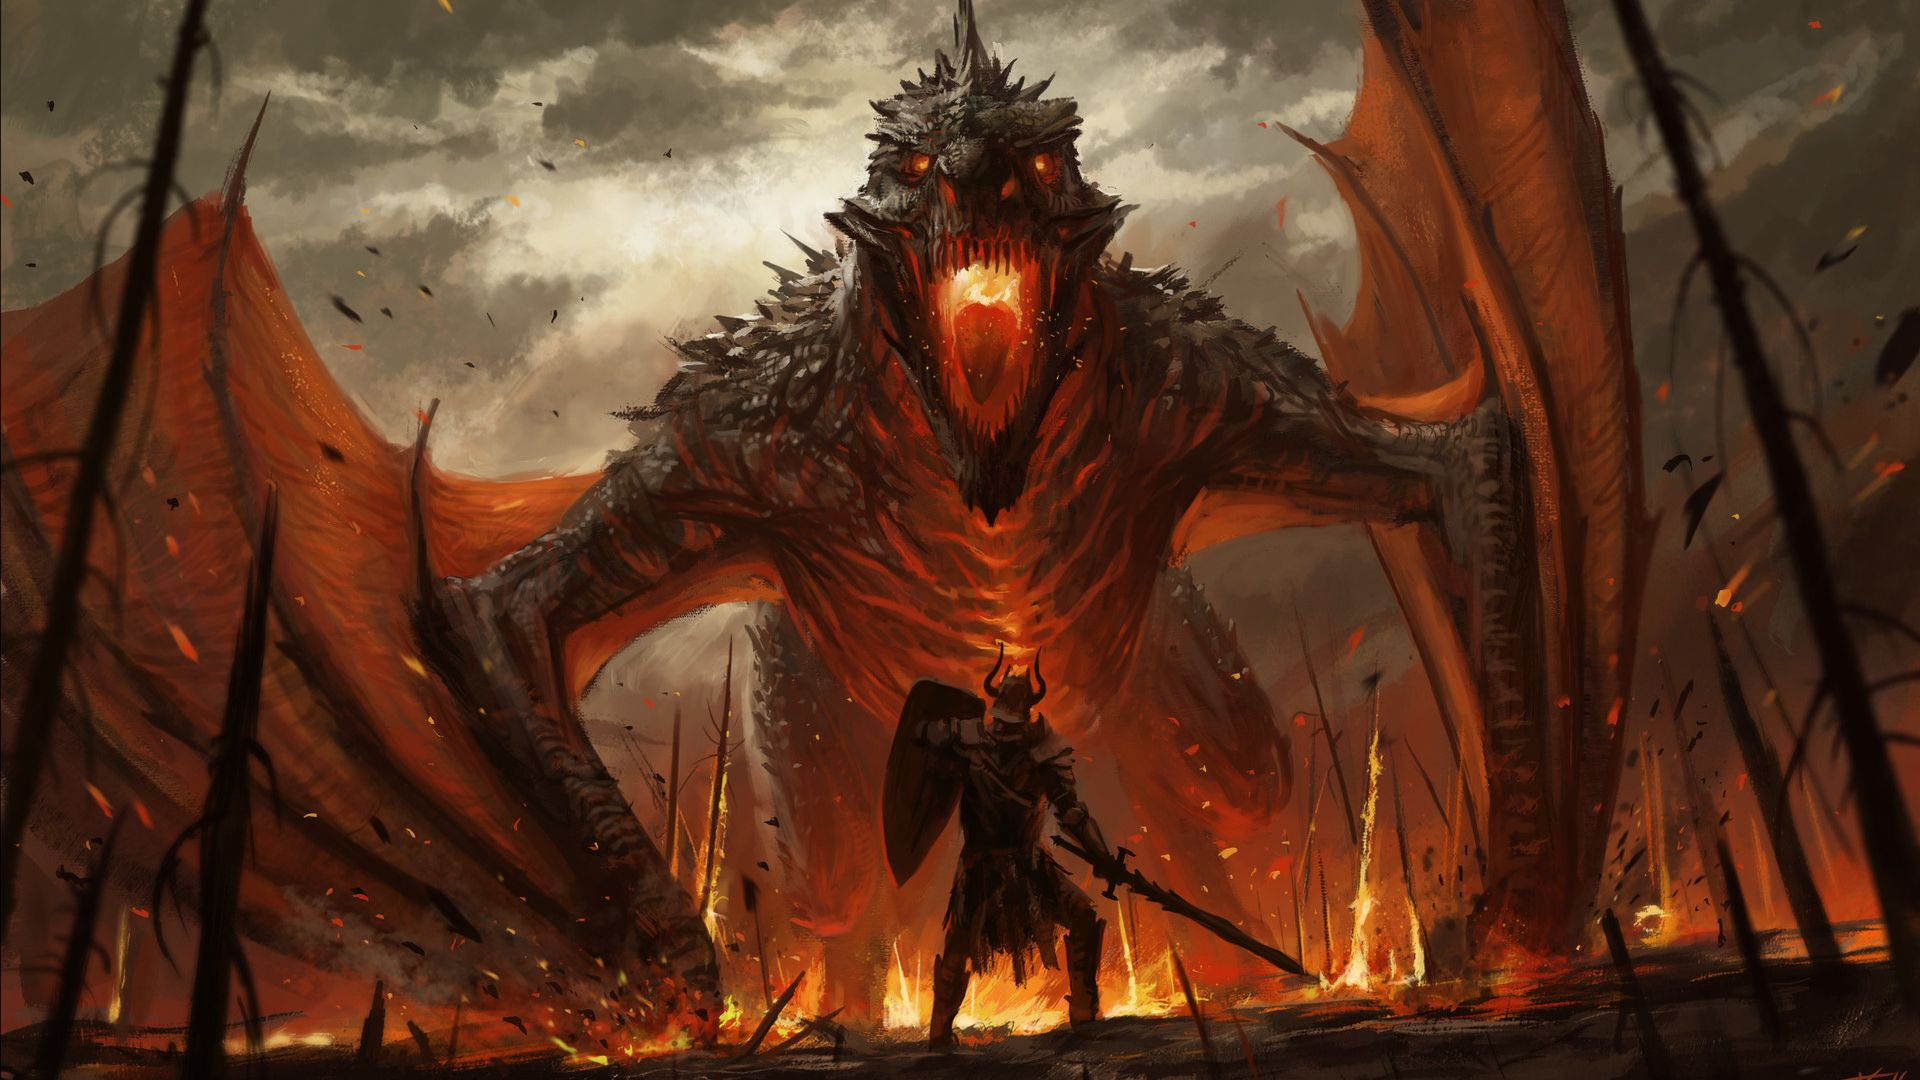 Hd Superhero Wallpapers For Pc Desktop Wallpaper Dragon And Warrior Fantasy Art Hd